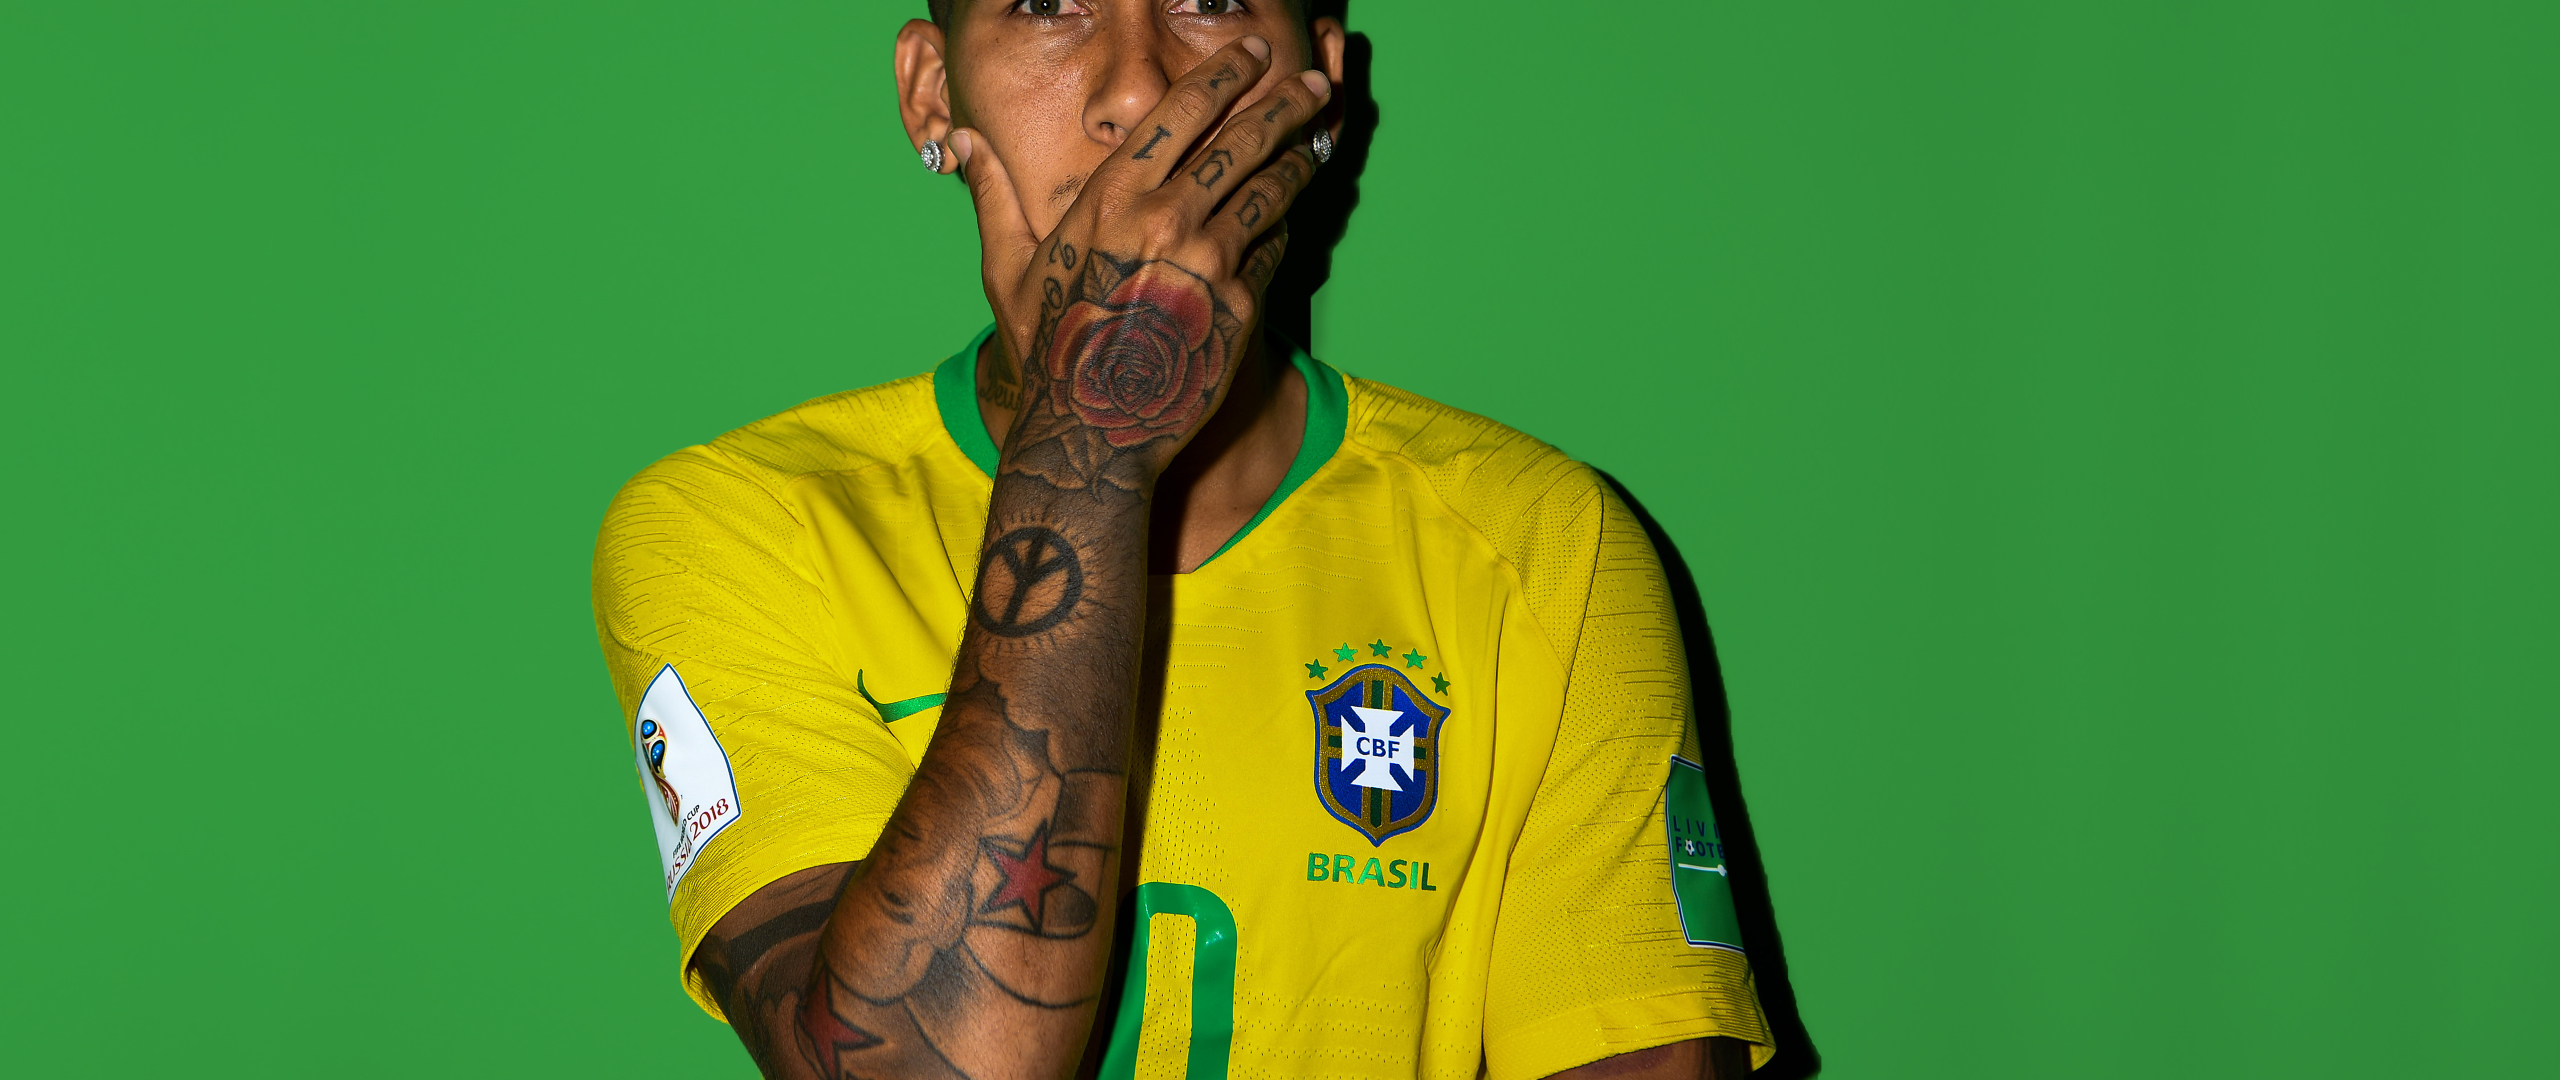 Download Roberto Firmino Fifa 2018 5120x2880 Resolution